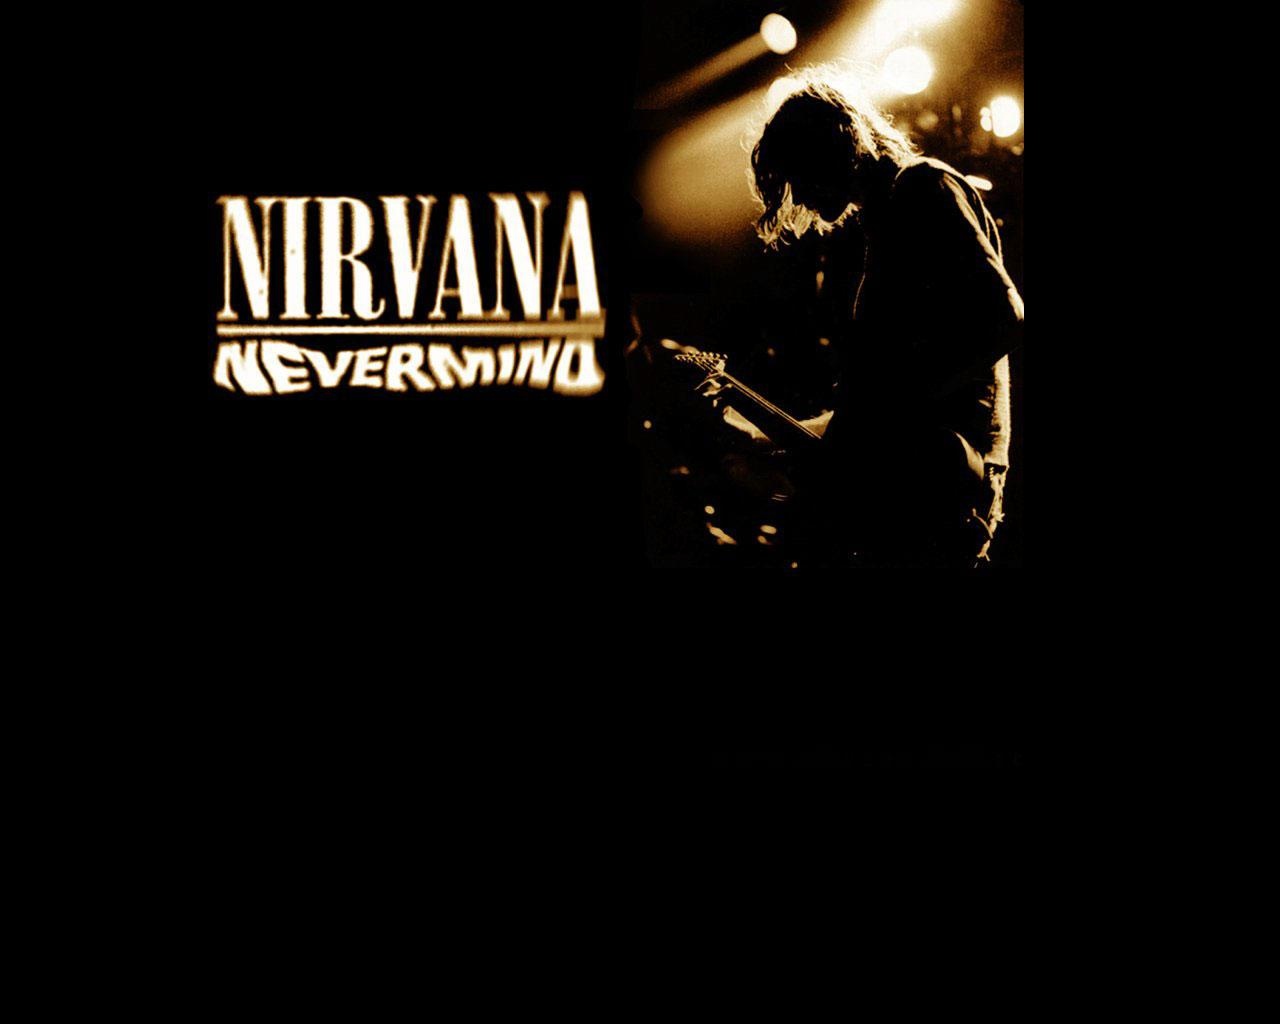 Nirvana Wallpaper #4 1280 x 1024